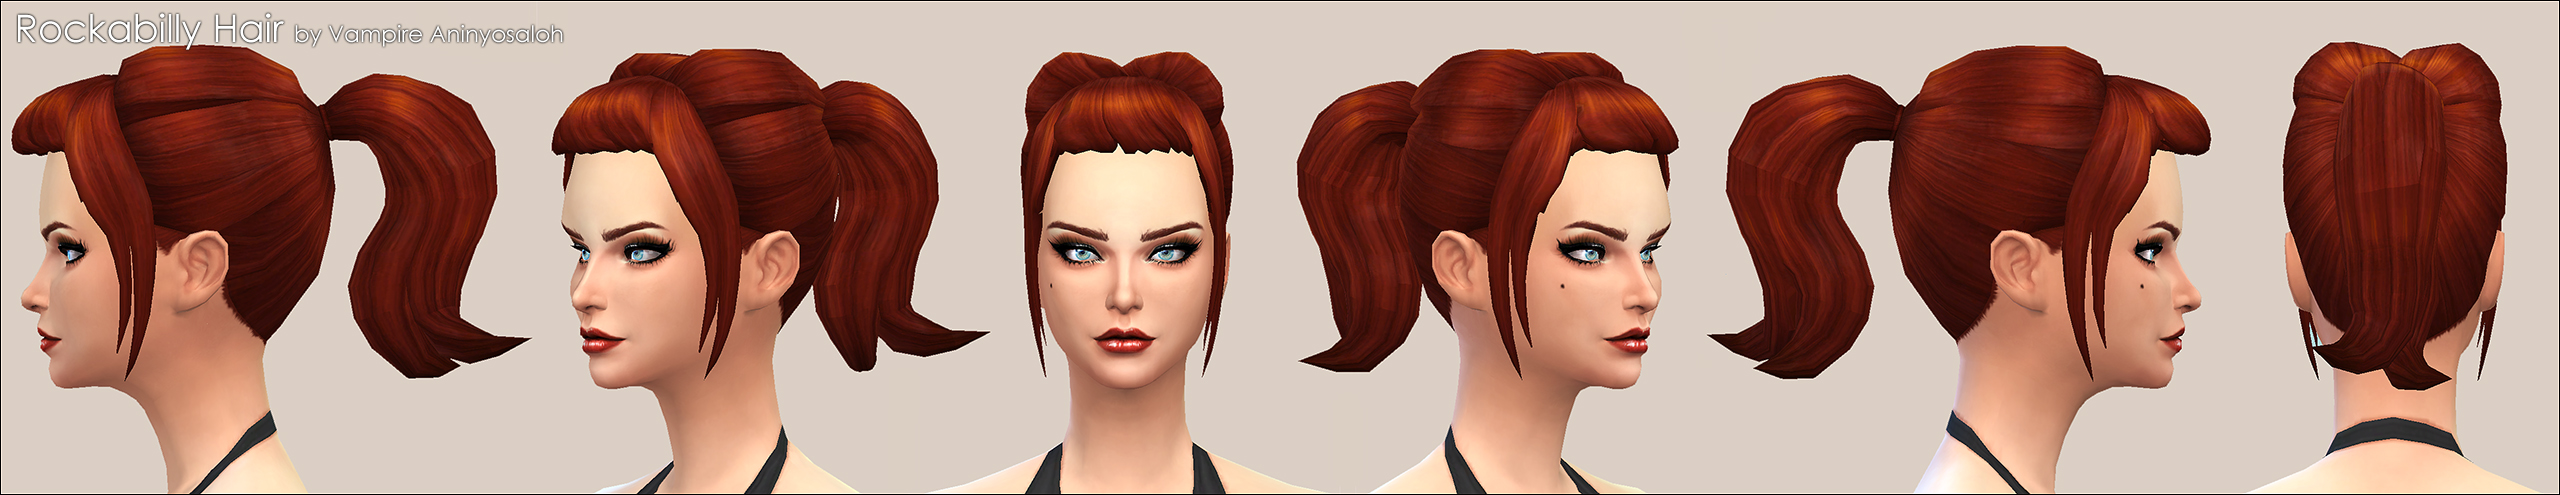 Rockabilly Hair -NEW MESH- by Vampire_aninyosaloh